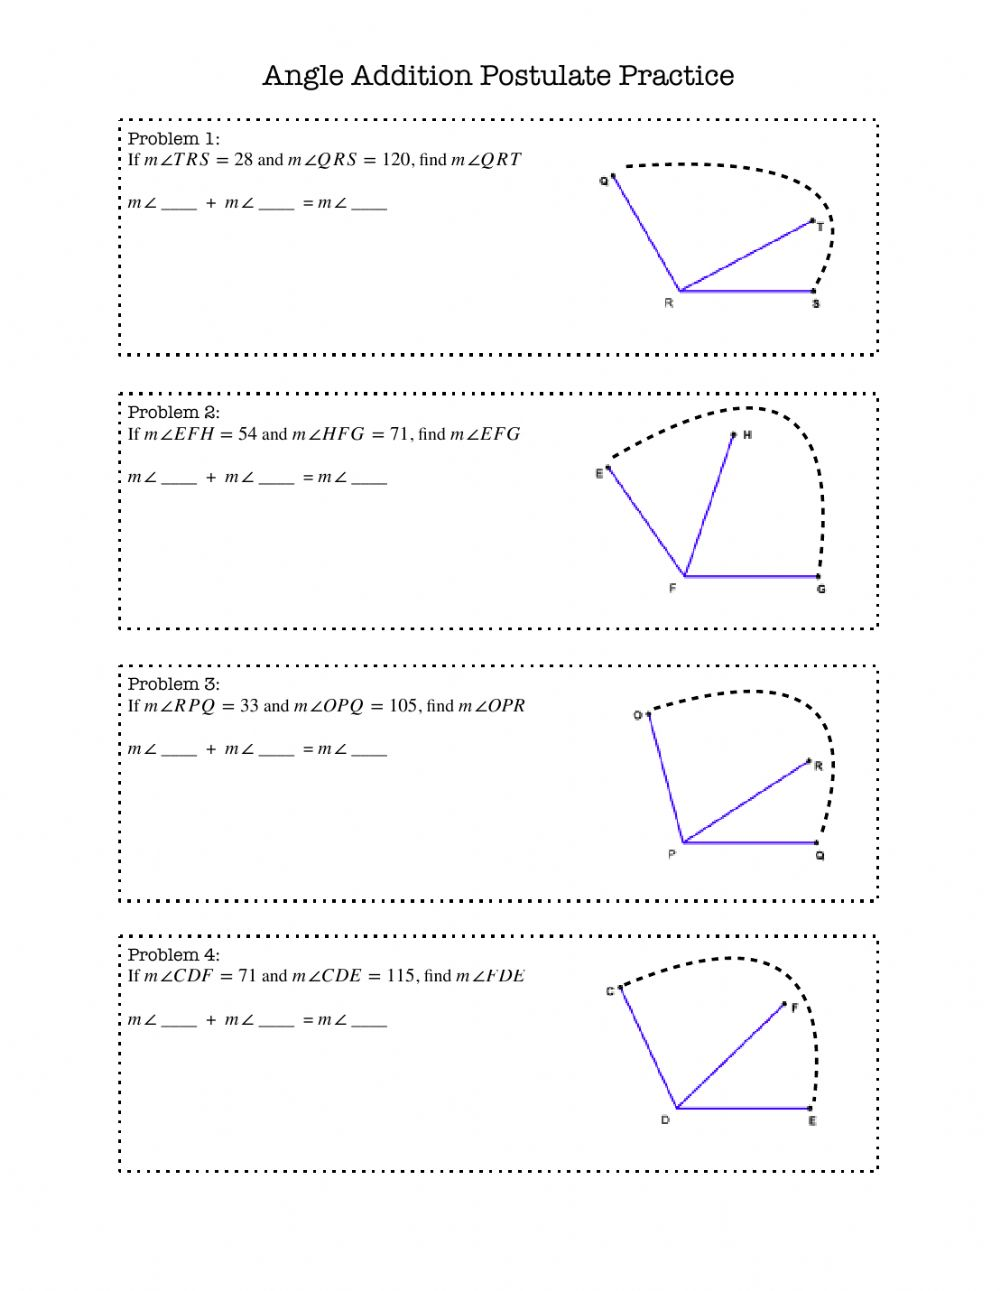 Angle Addition Postulate Numerical Practice worksheet